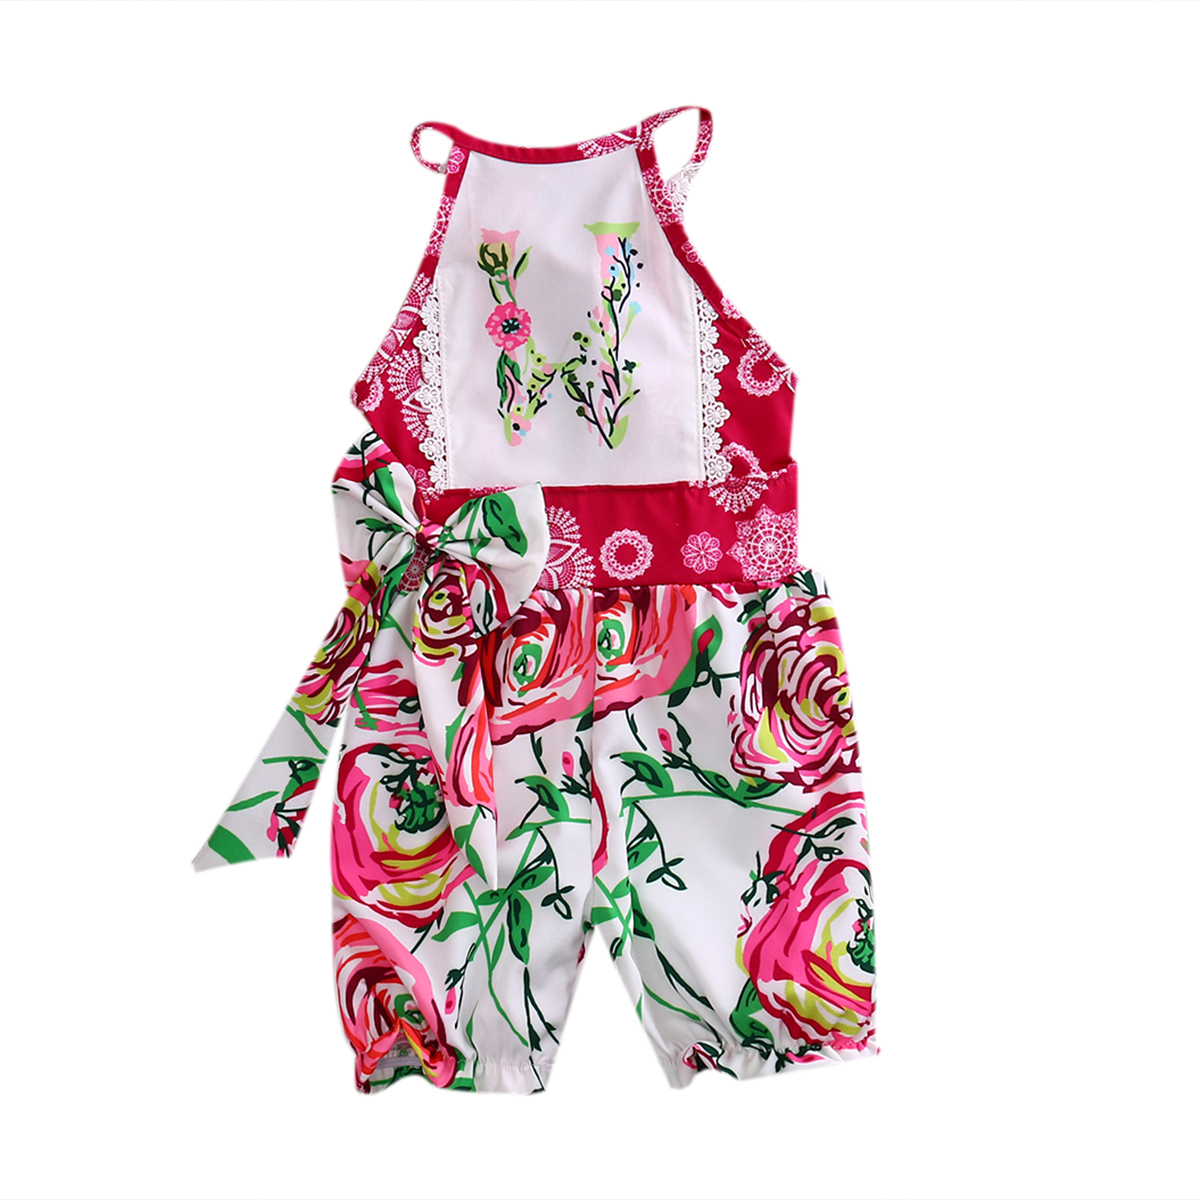 Summer 2017 Baby Girl Clothes Halter Floral Bownot Romper Suit Set Clothes Jumpsuit Outfits Summer